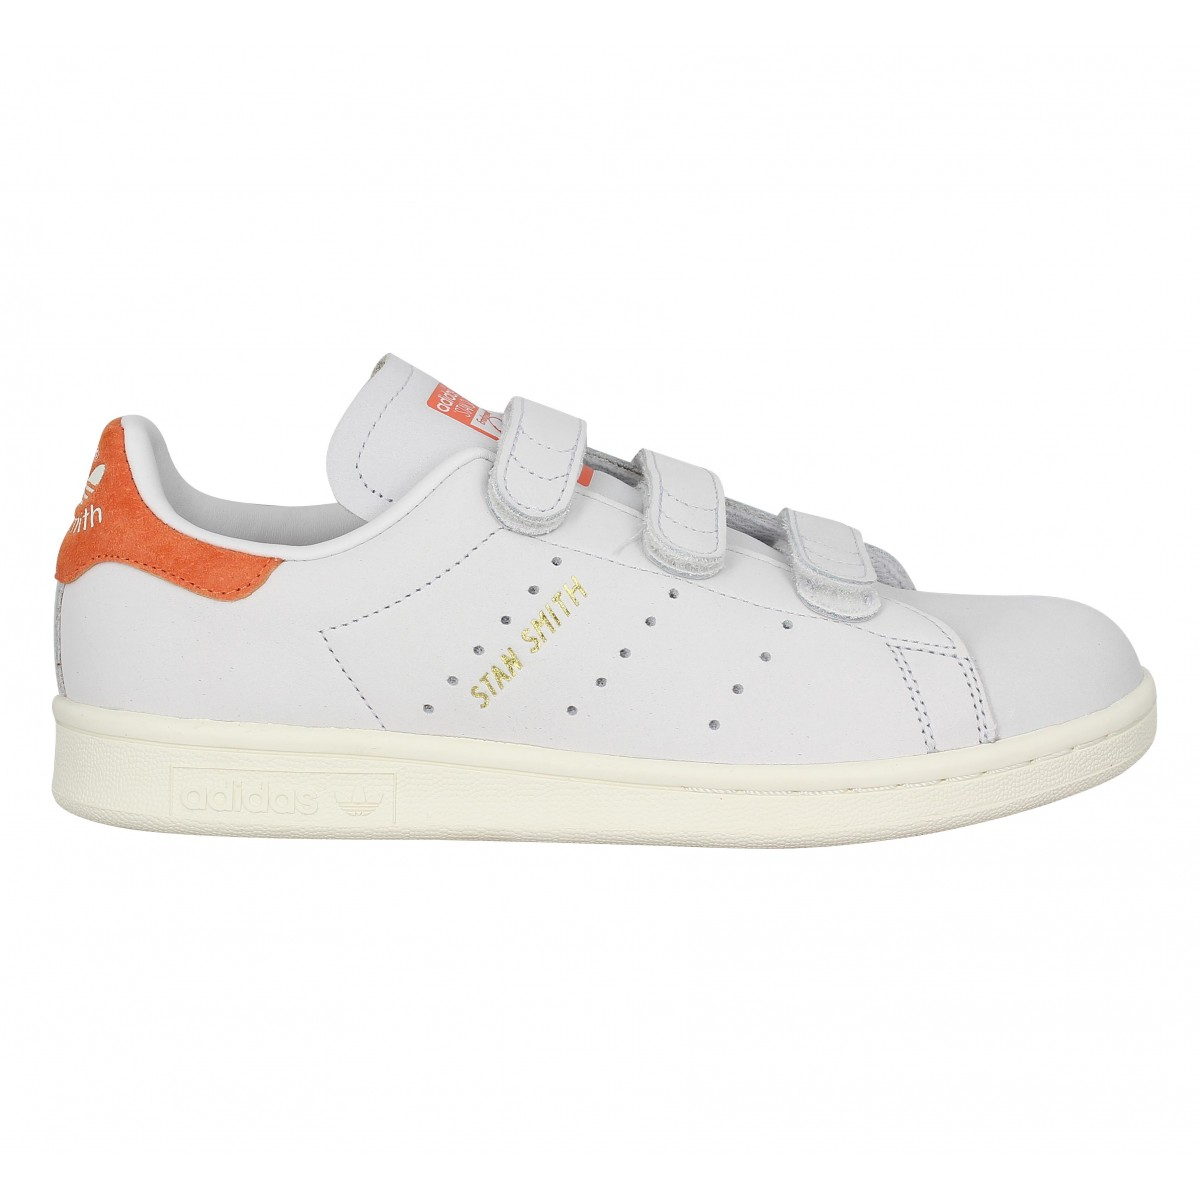 chaussures adidas stan smith velcro nubuck femme blanc femme fanny chaussures. Black Bedroom Furniture Sets. Home Design Ideas